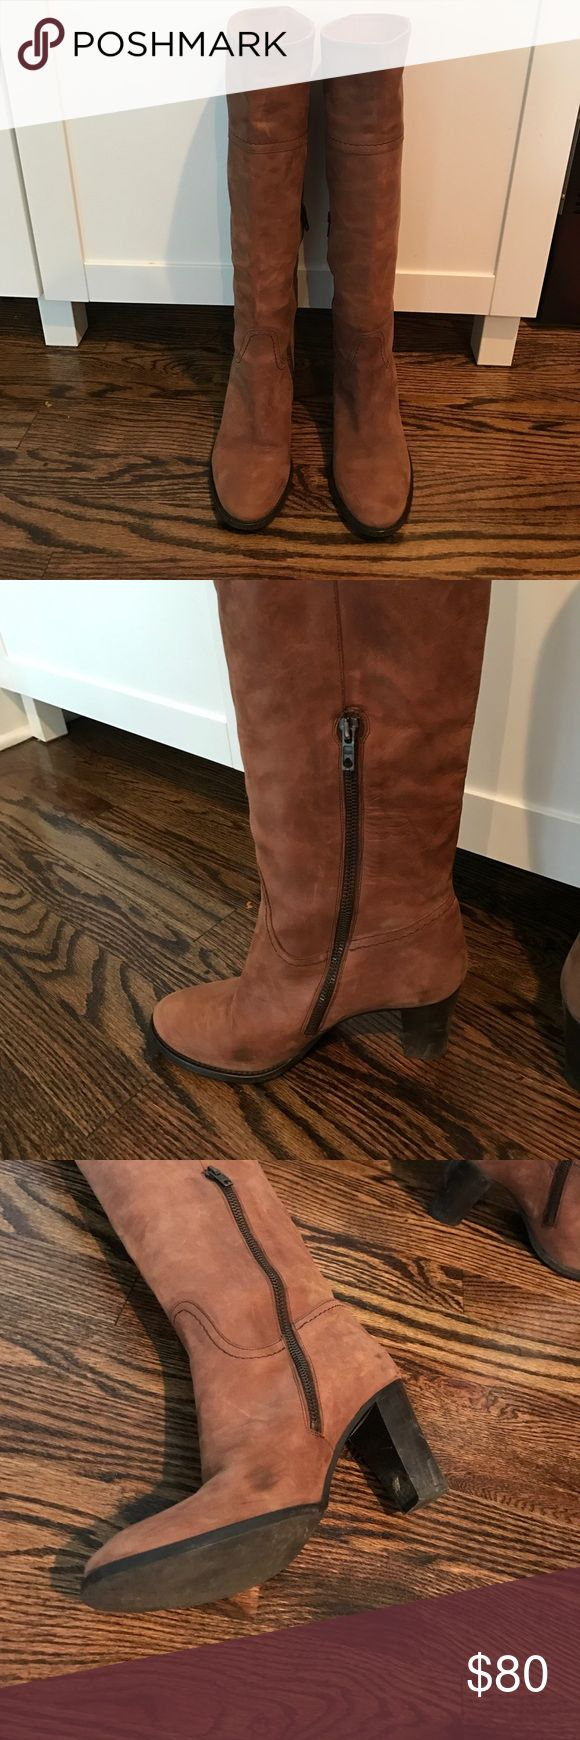 J Crew Leather boots Beautiful tall brown leather J Crew boots. Made in Italy. Some scratching and dark spots on leather from wear but normal and still look very good! Heels and soles are in great condition. J. Crew Shoes Heeled Boots